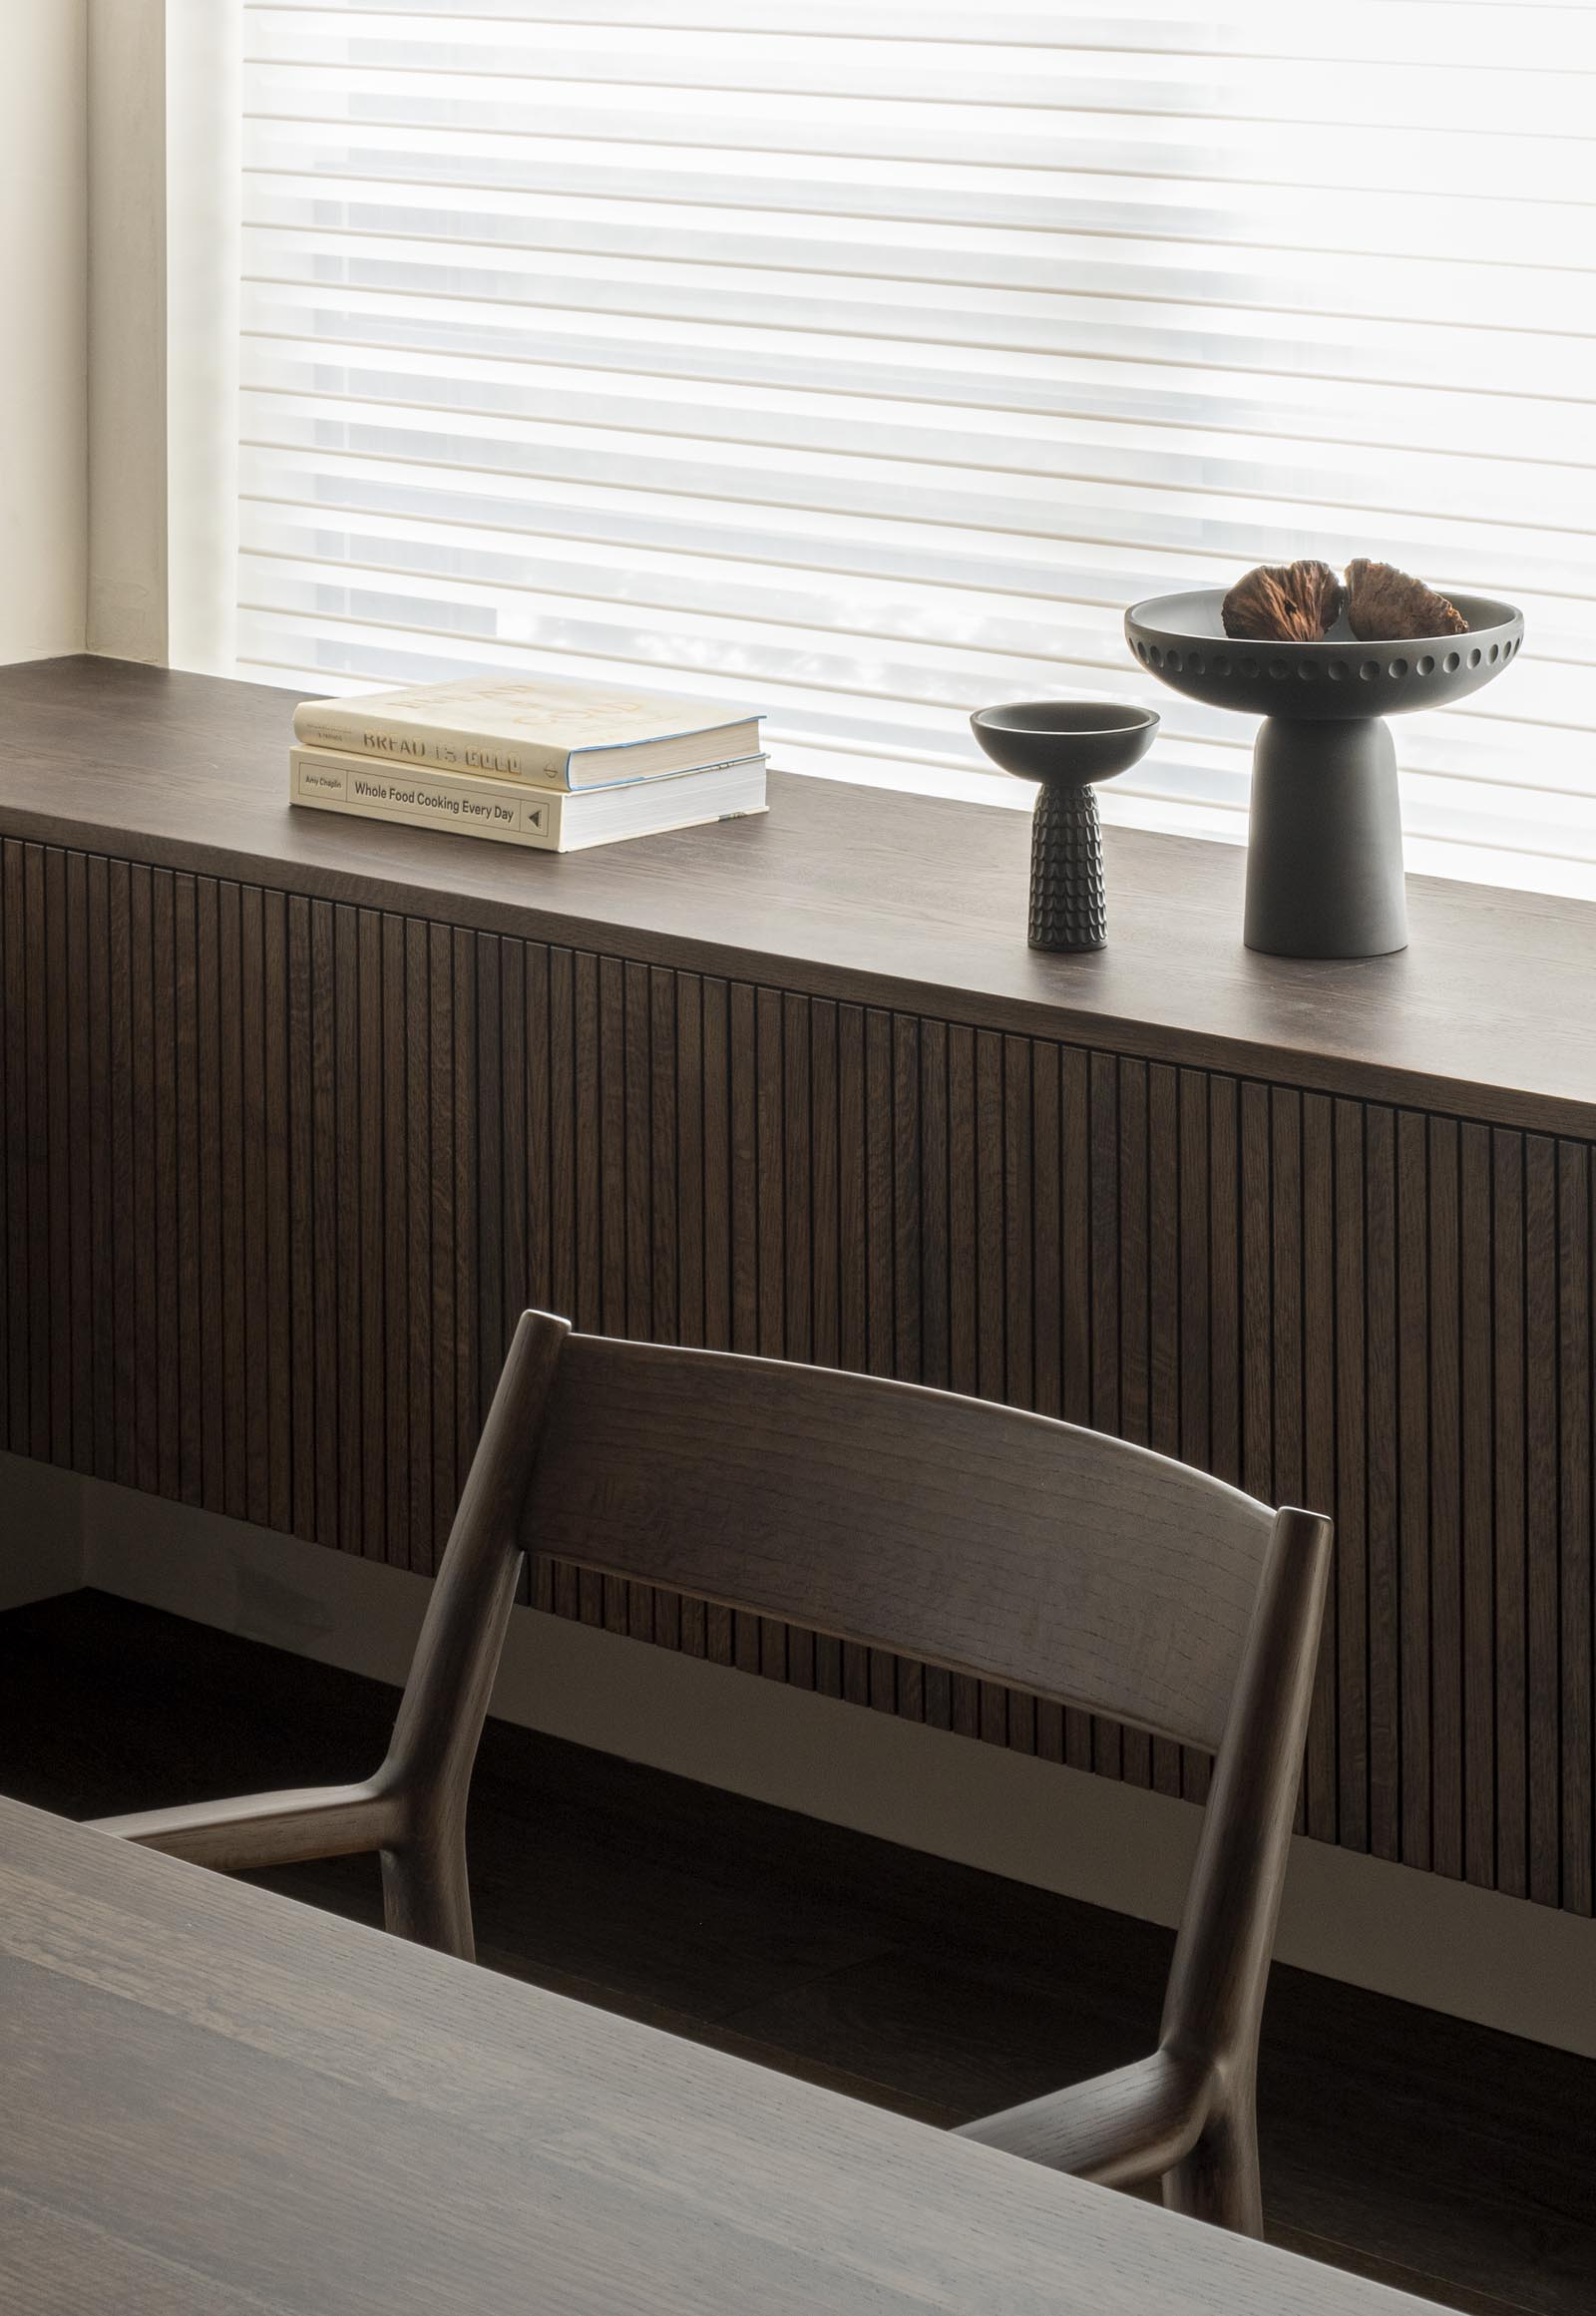 Bespoke wooden cabinetry in dark, earthy tones from Japandi design collaboration Karimoku Case Study | Home tour - soft minimalism & dark, earthy tones in Tokyo | These Four Walls blog